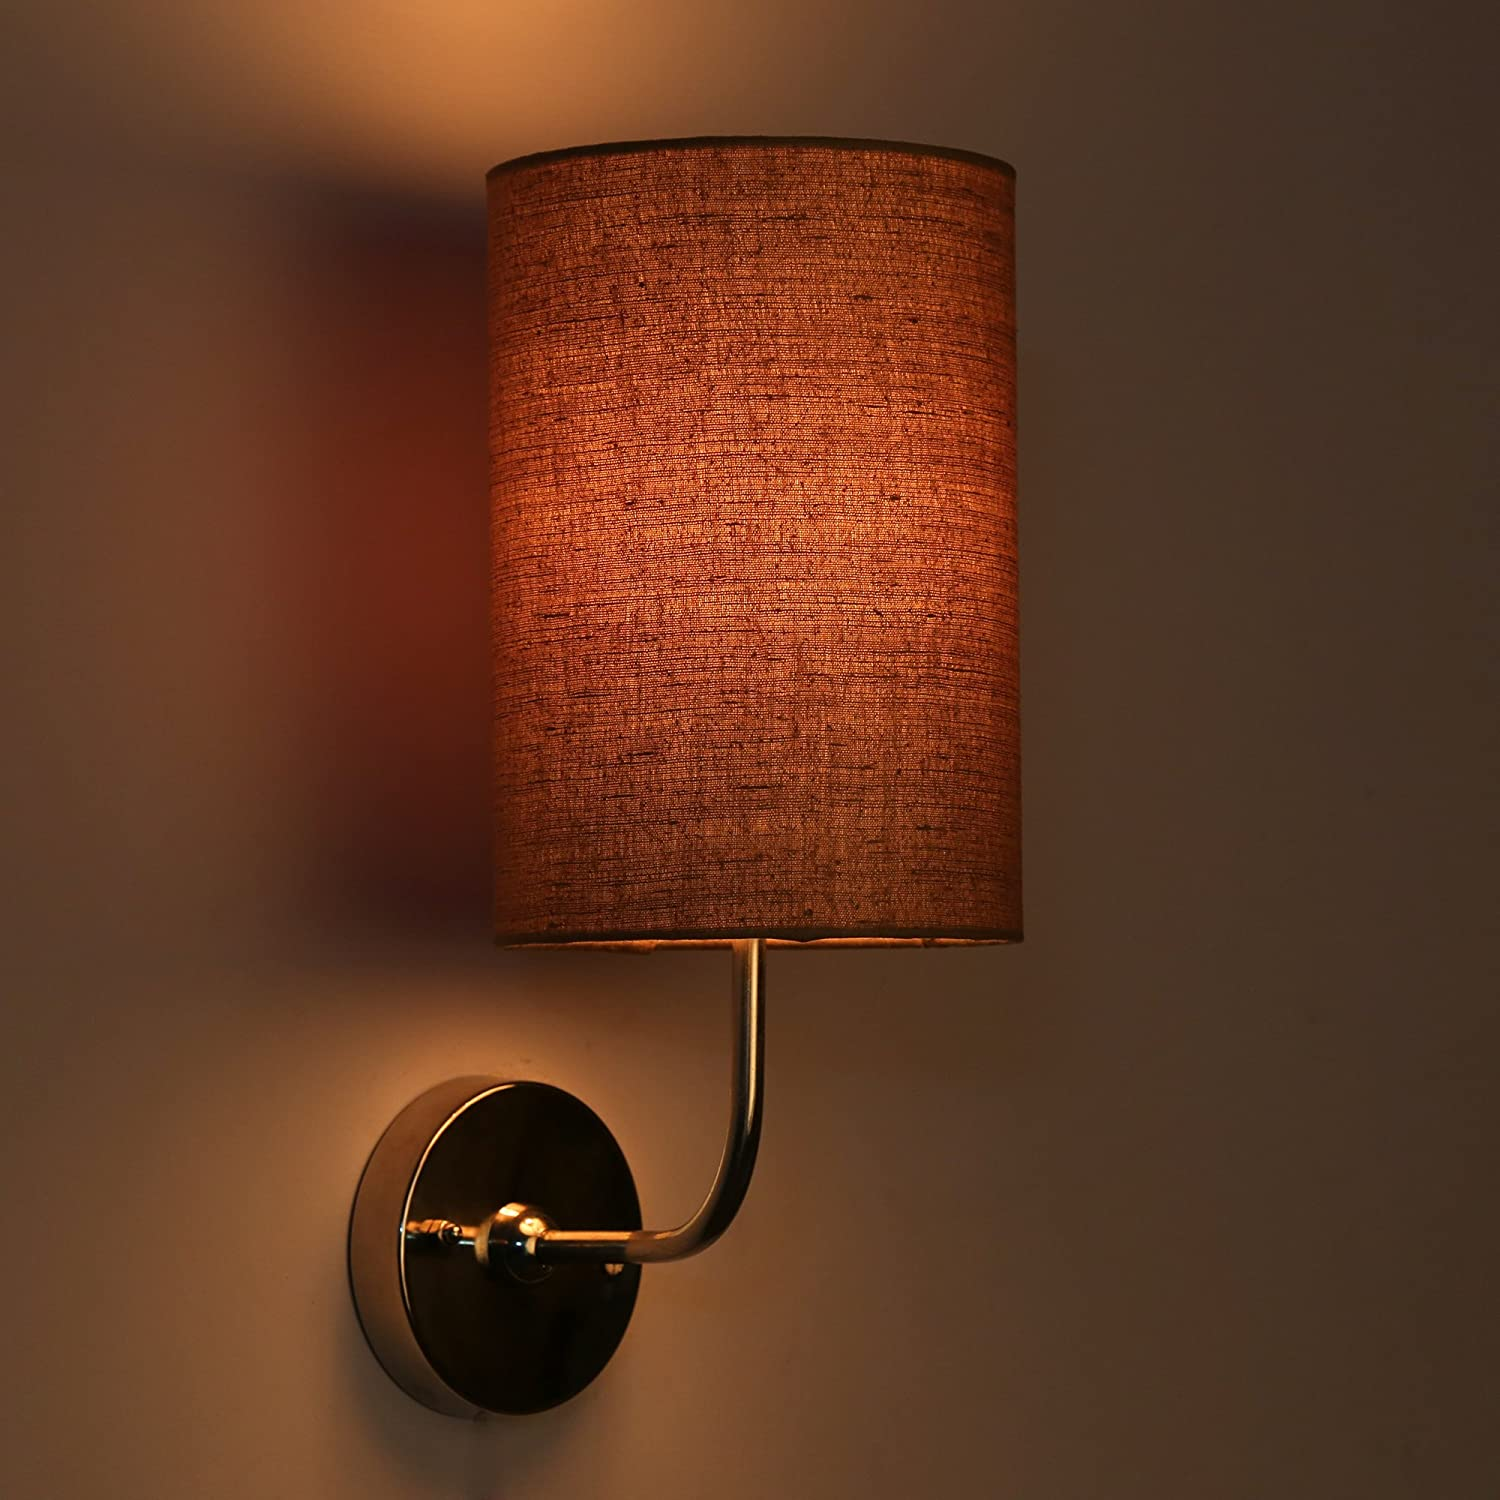 Craftter Matka Silk Hand loom Fabric Brown Colour Round Wall Lamp Wall Sconce and Wall SpotLight…